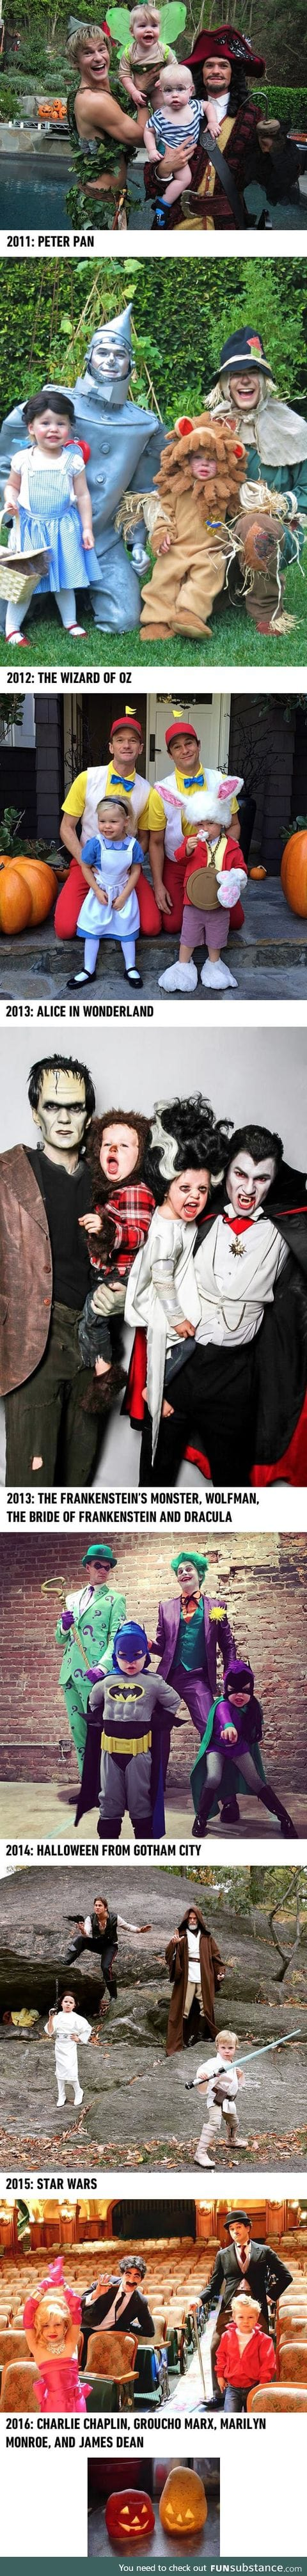 Neil Patrick Harris and Family Give Us Serious Costume Goals